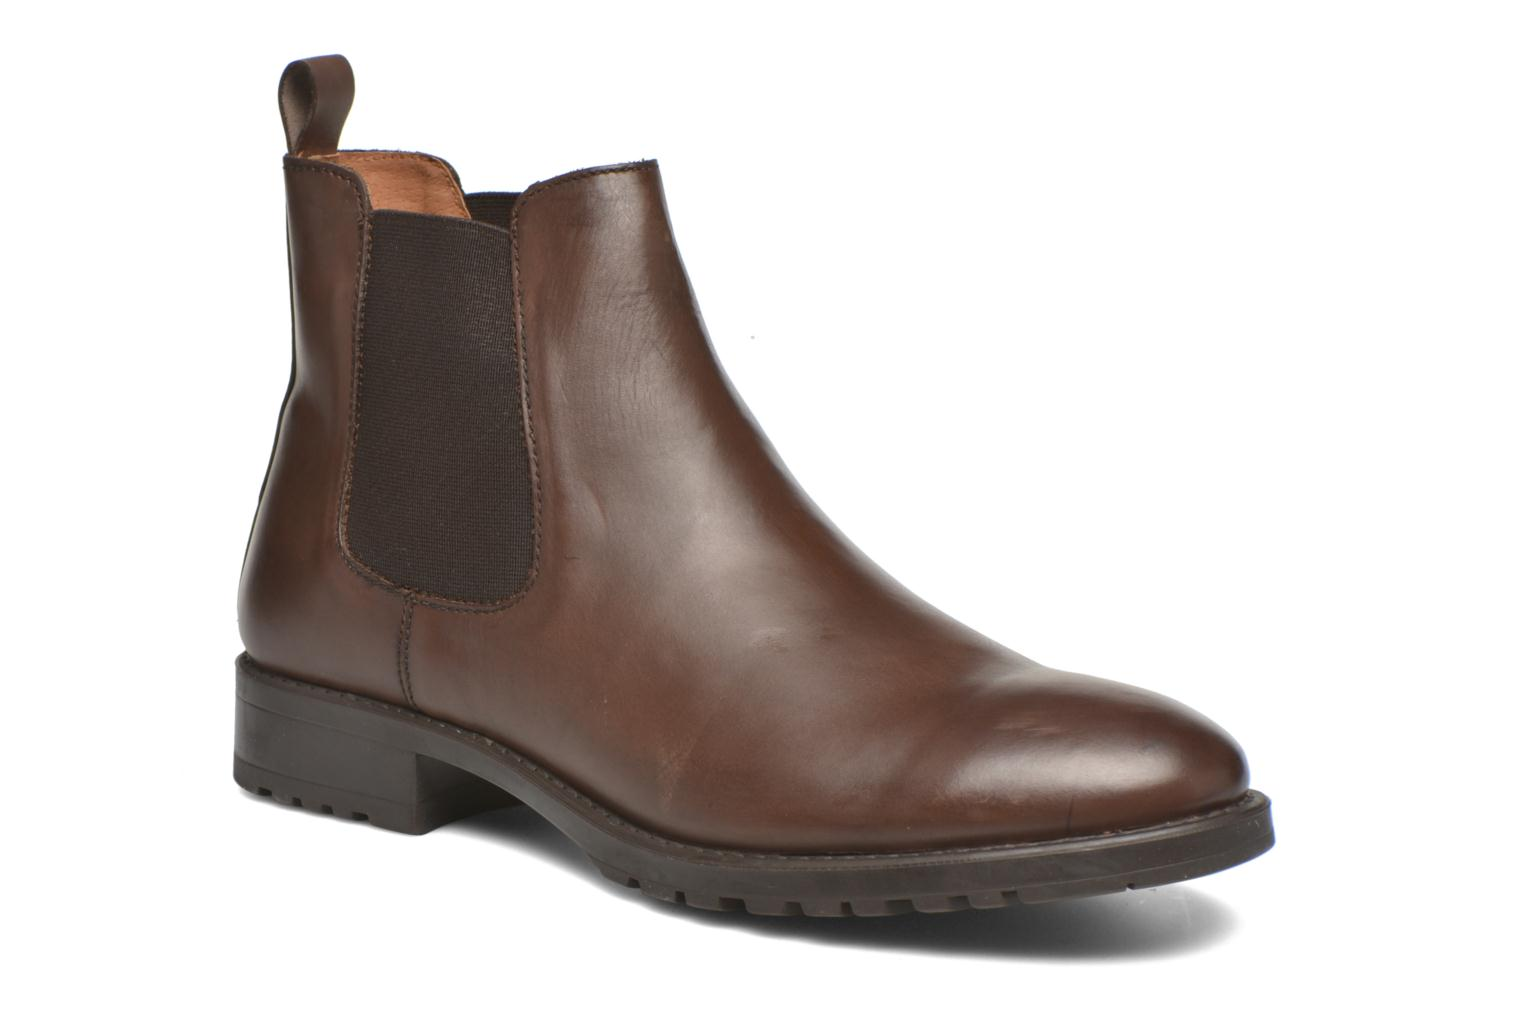 Marques Chaussure homme Marvin&Co homme Ahsford Brown caleb 1152